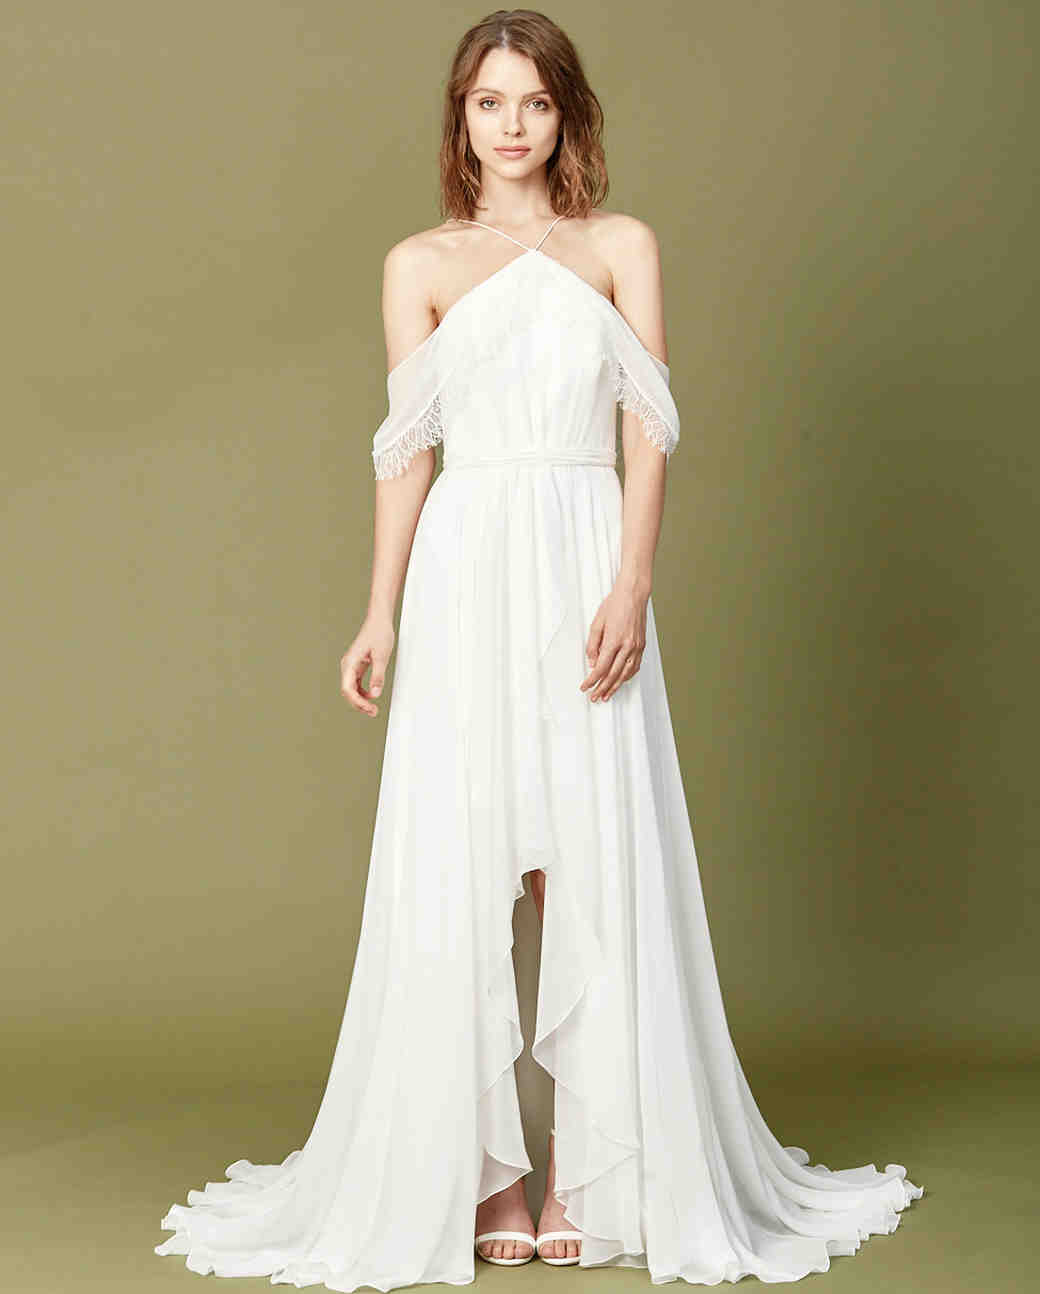 Amsale Christos Fall 2017 Wedding Dress Collection